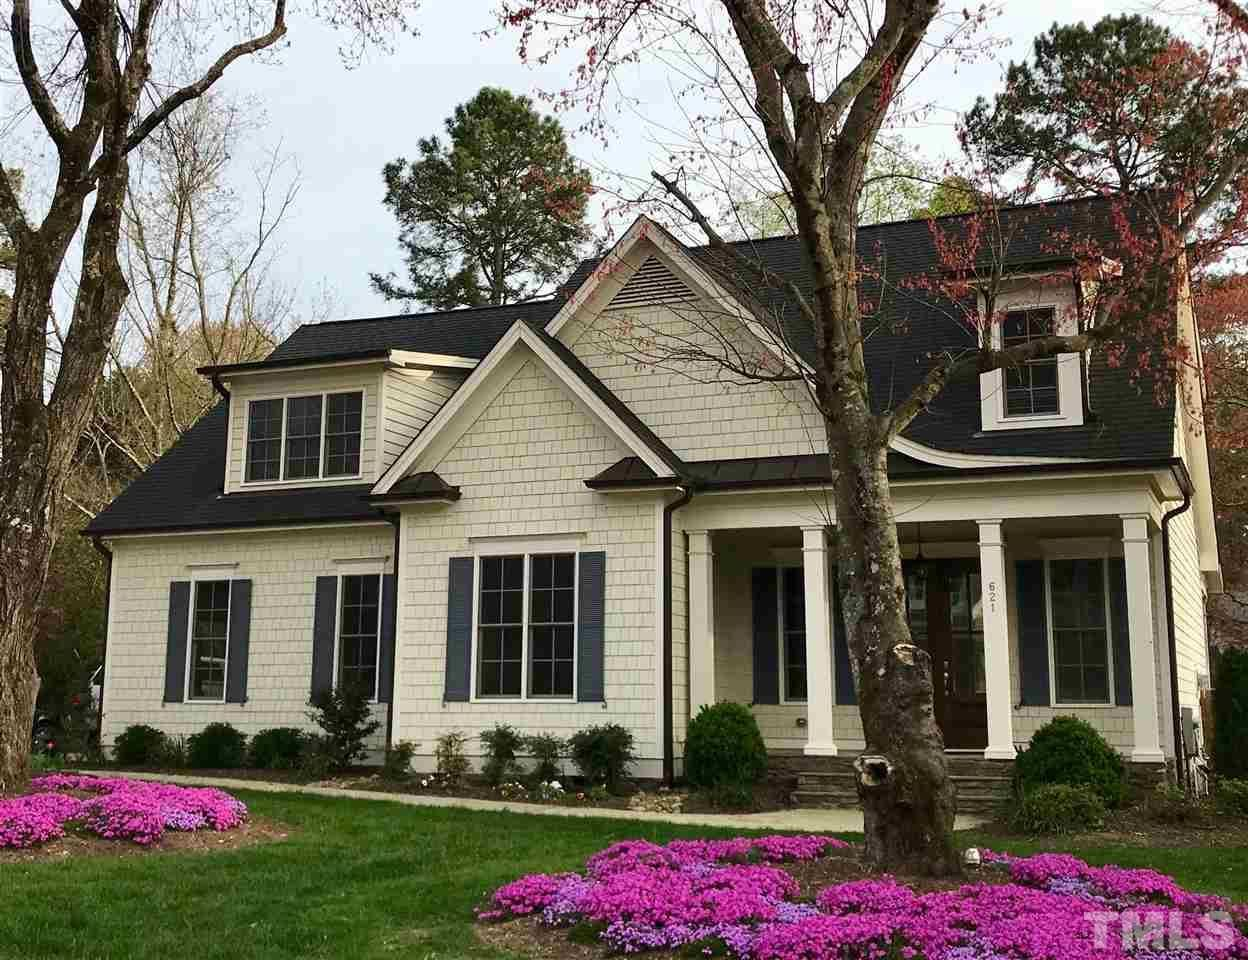 Photo of 621 Manchester, Raleigh, NC 27609 (MLS # 2342408)